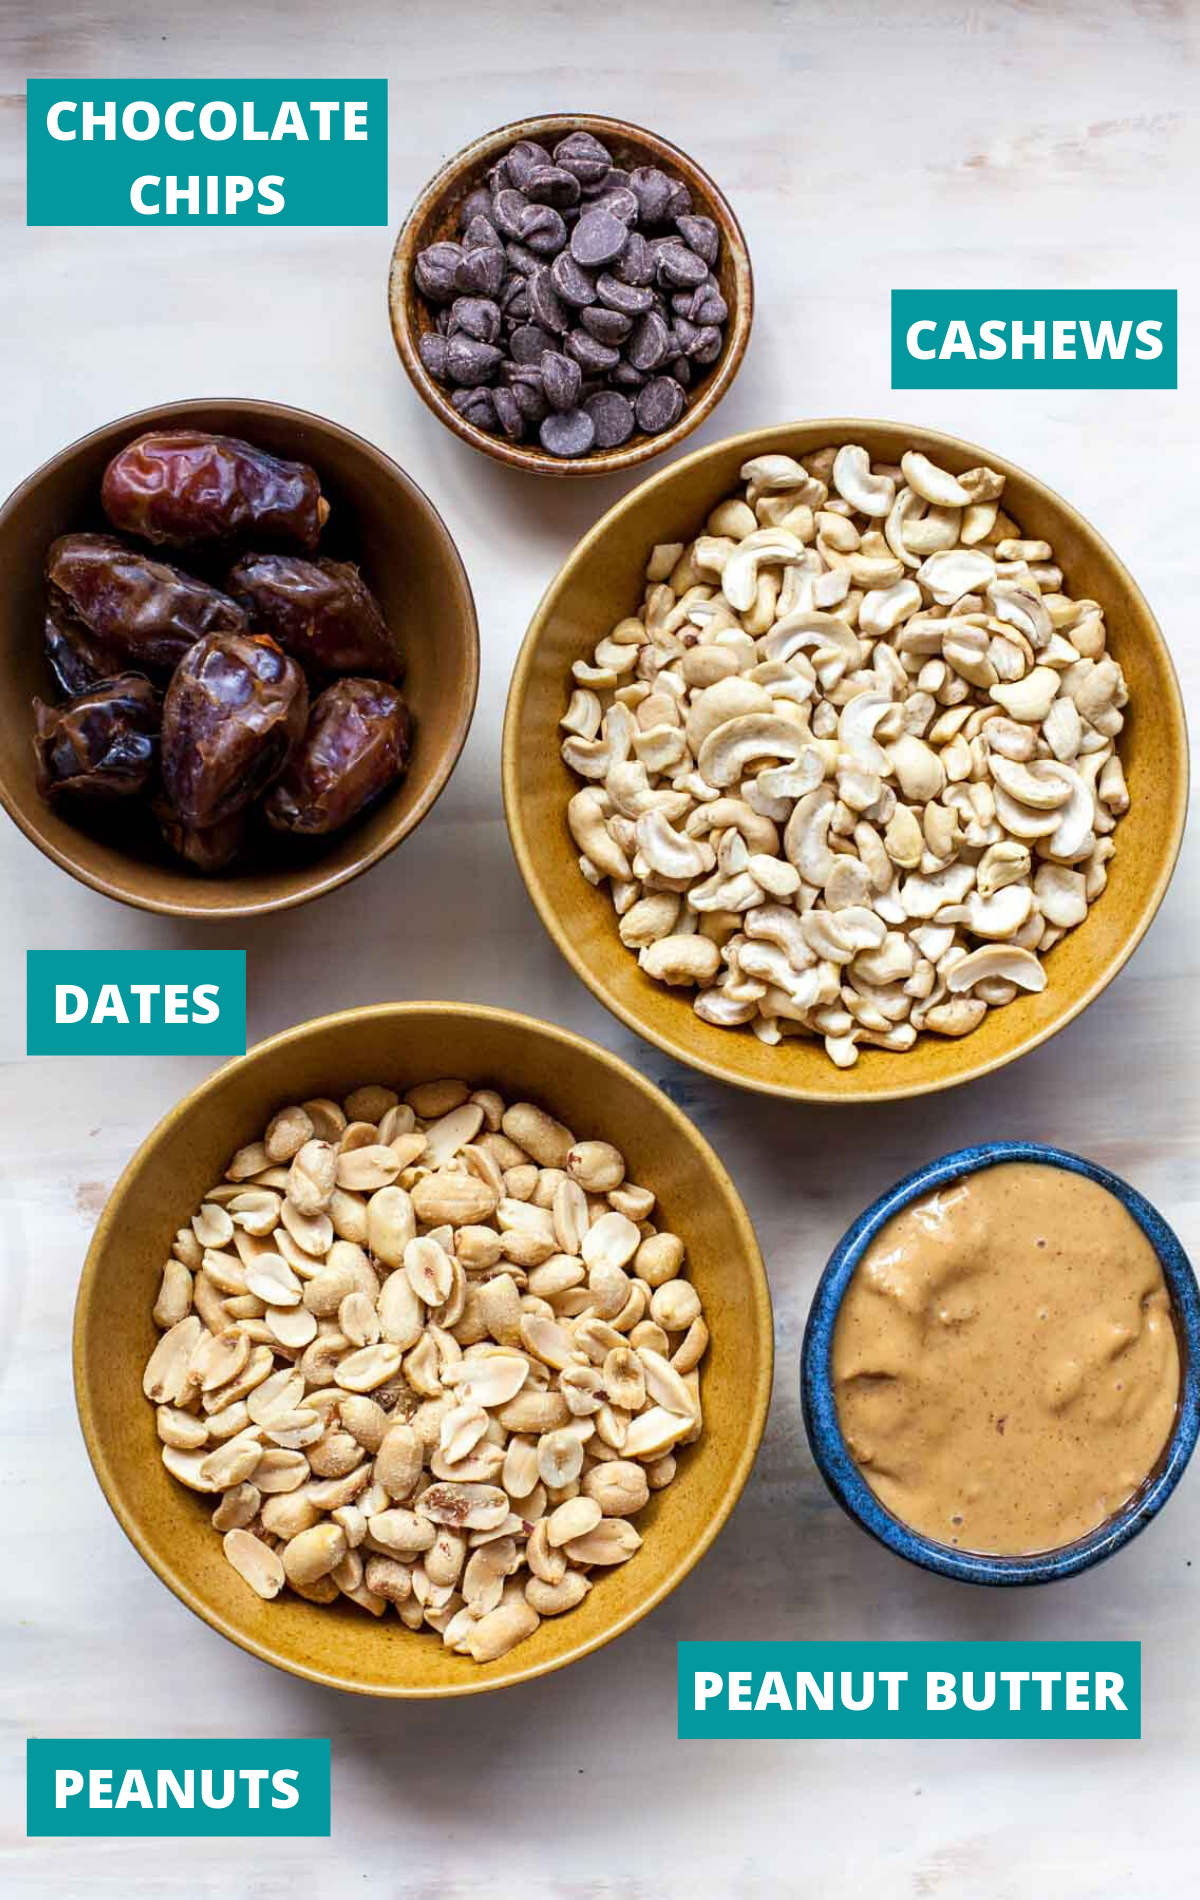 Nuts, dates, chocolate chips, and peanut butter in separate bowls on a white board